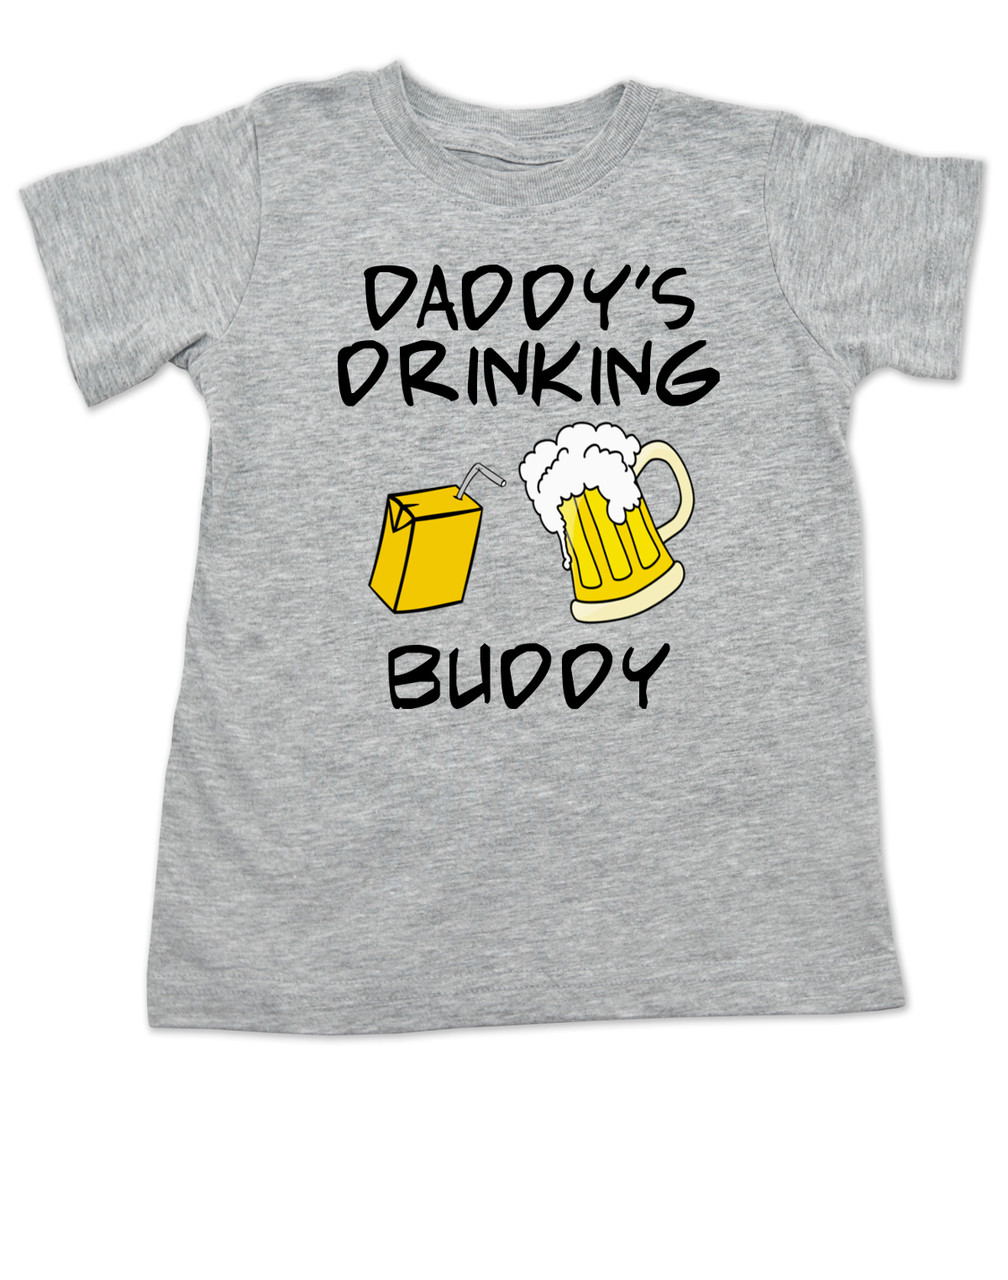 Baby Milk Shirt Fathers Day Tee Gift Kids Just Drink It Funny Shirt